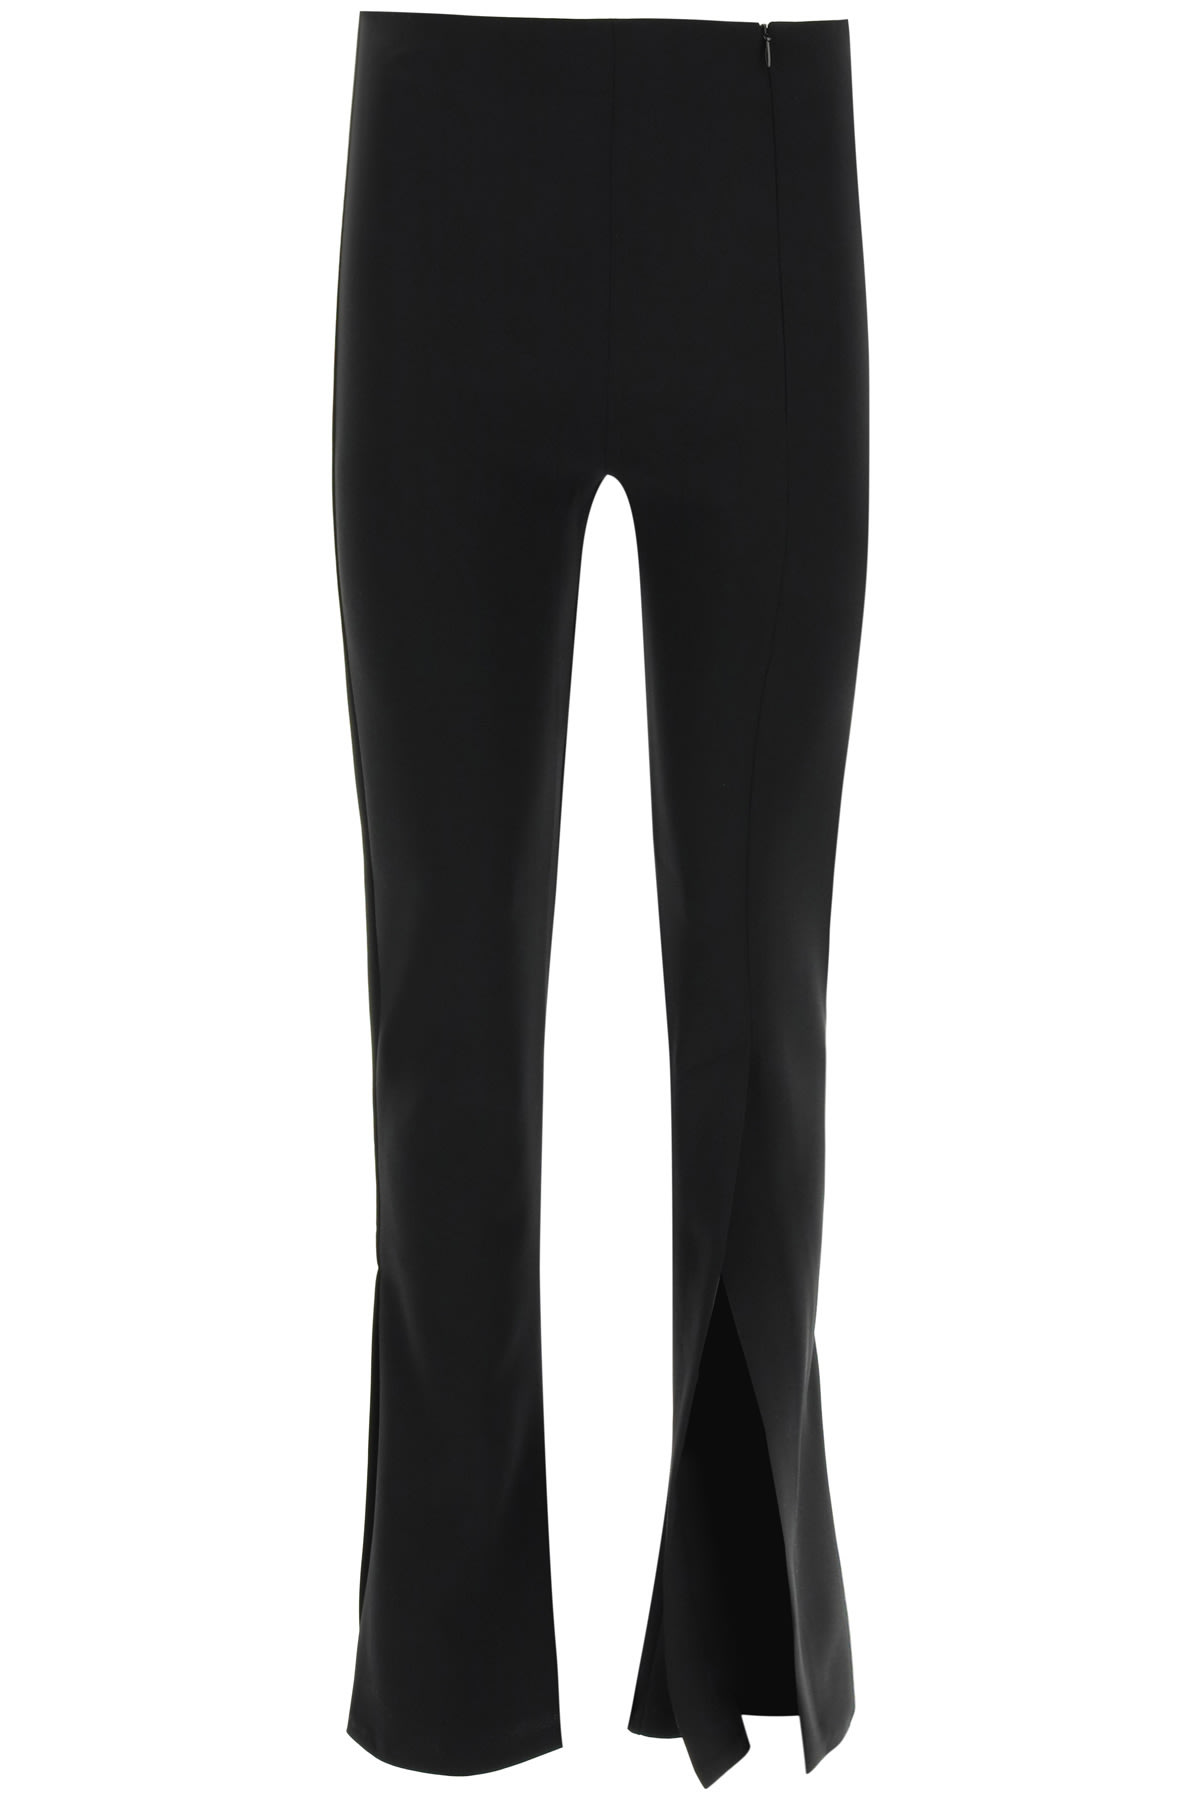 A.w.a.k.e. Clothing SLIM TROUSERS IN CADY